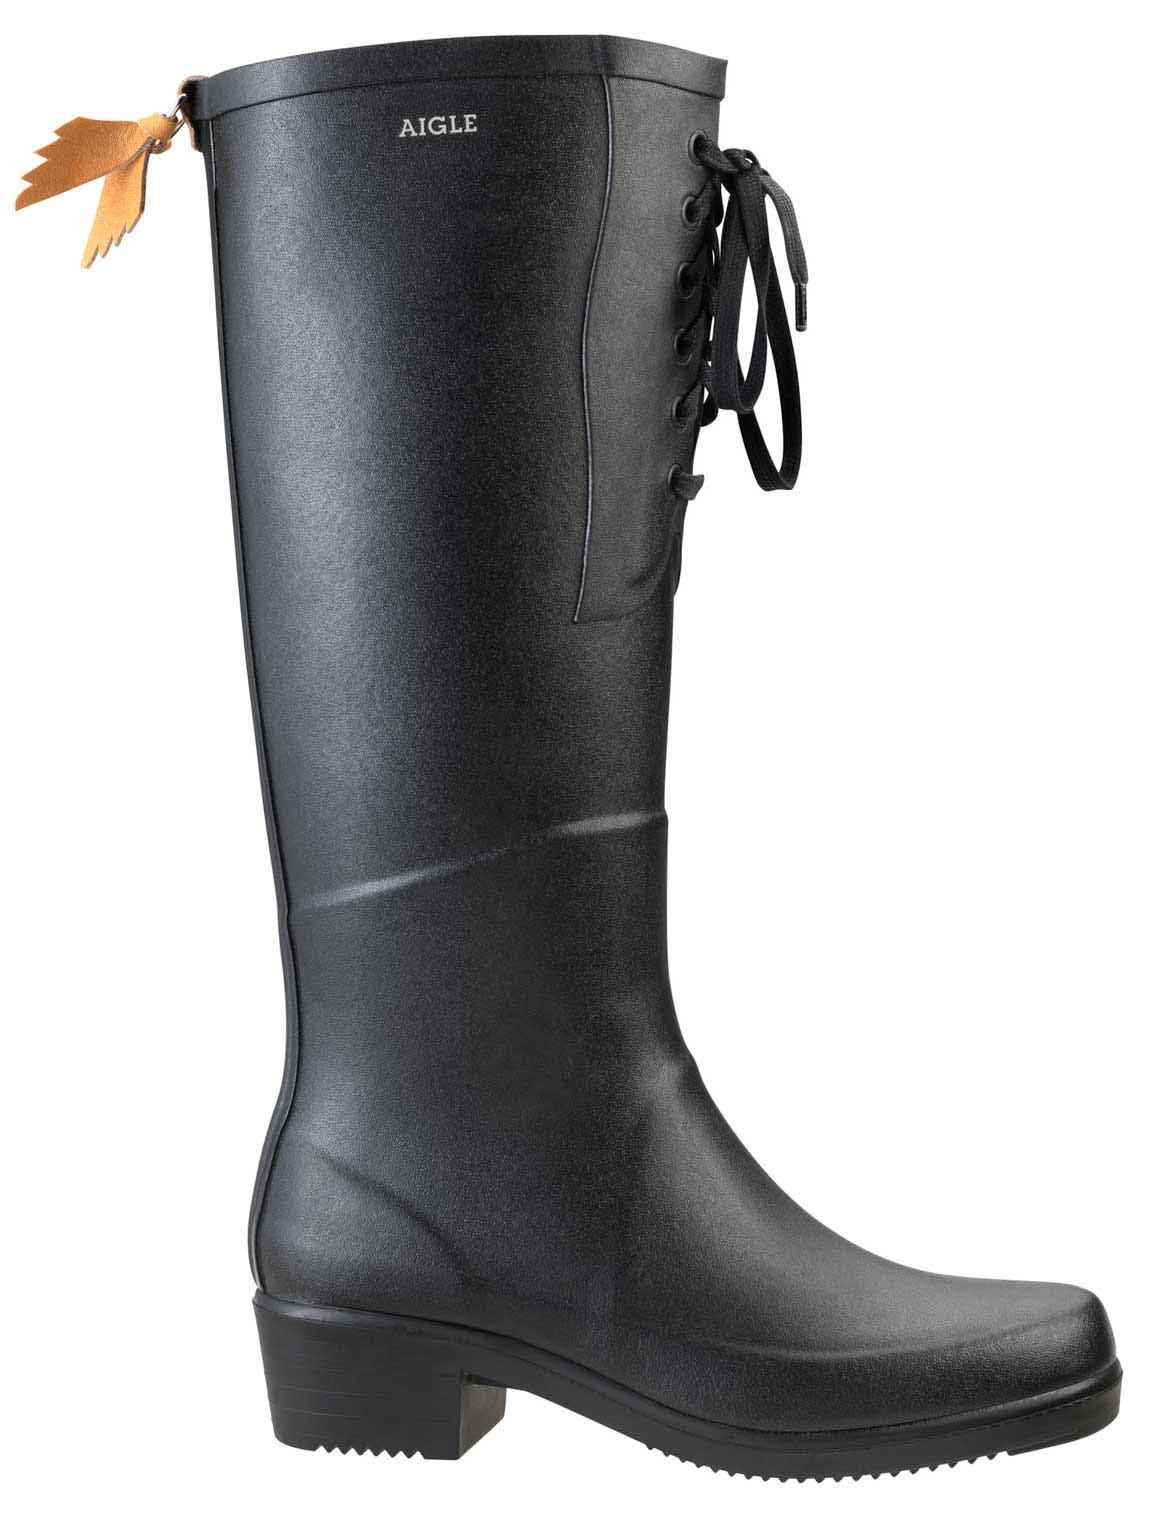 shopping online original top quality sale online AIGLE Juliette Rubber Wellington Boots buy cheap high quality on hot sale GbIoyaBzF